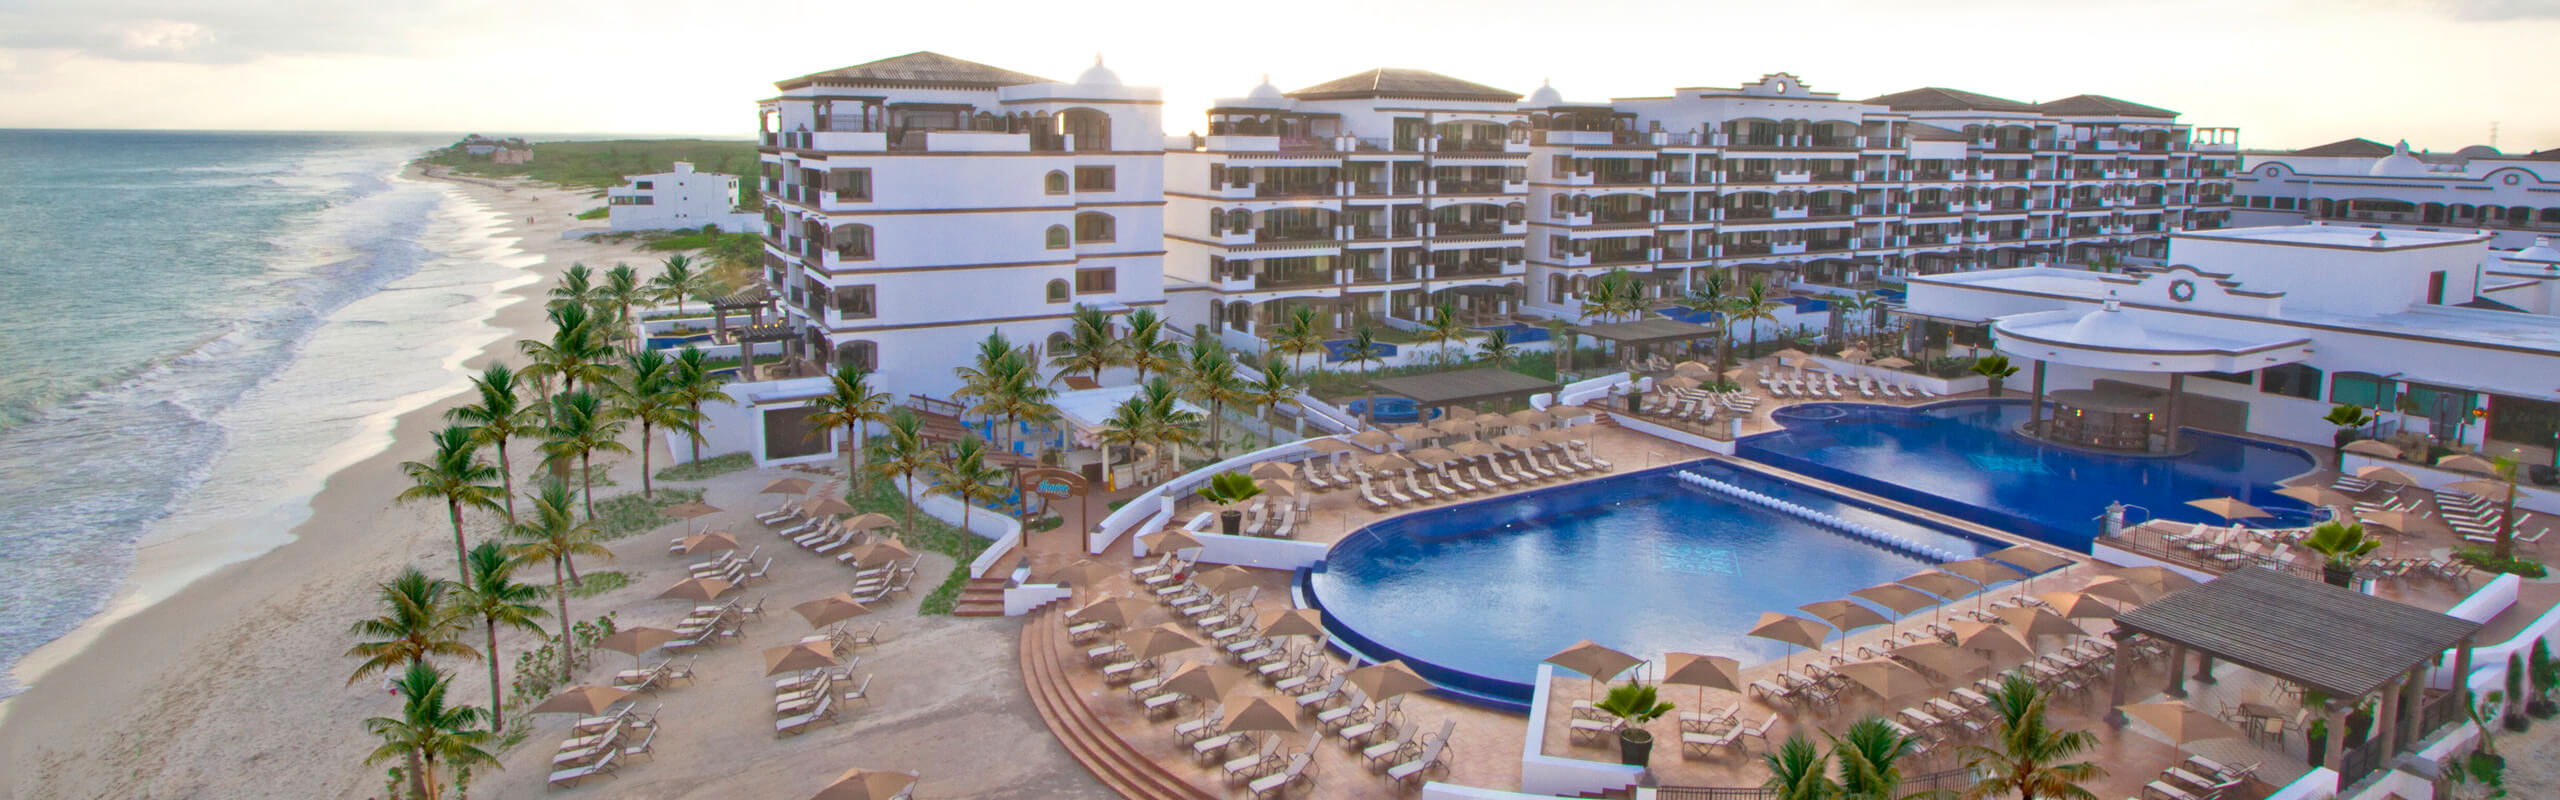 Grand Residences Riviera Cancun, a new standard in luxury and beachfront living